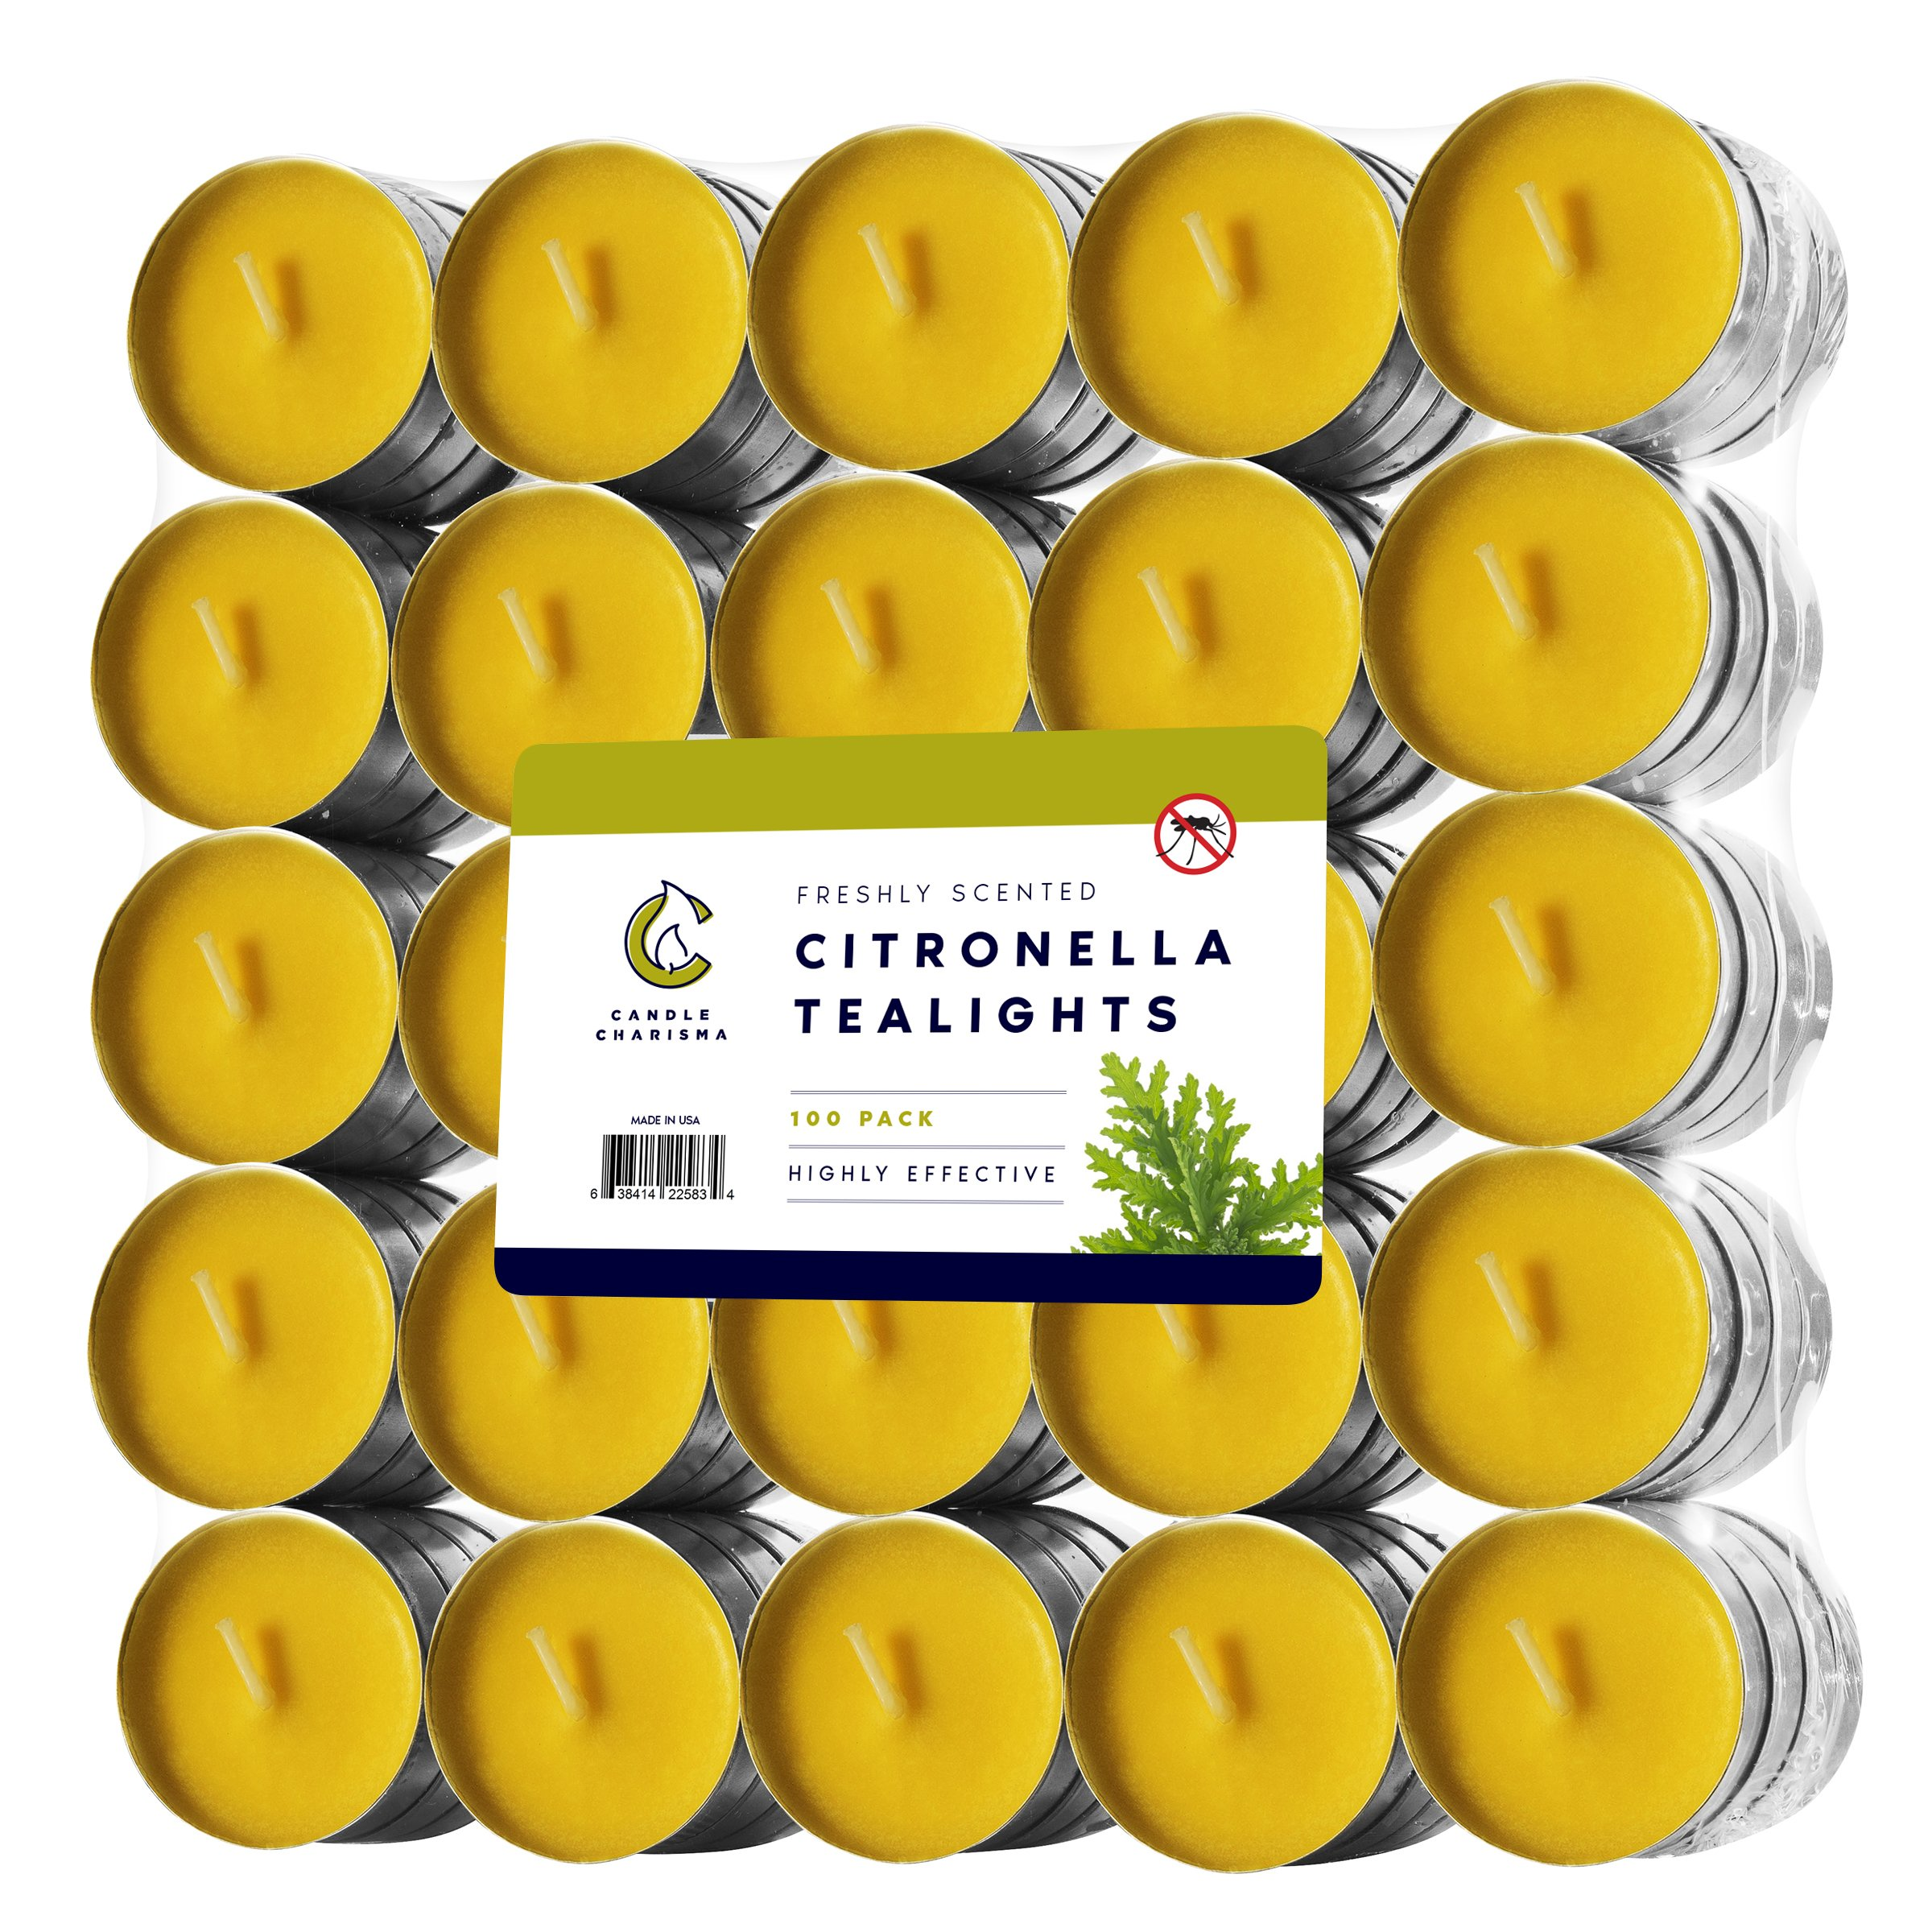 100 Citronella Oil Wax Tealight Candles Bulk - Mosquito Repellent - Deet Free - Yellow - Outdoor Indoor - Summer Candles - Made in USA by Candle Charisma